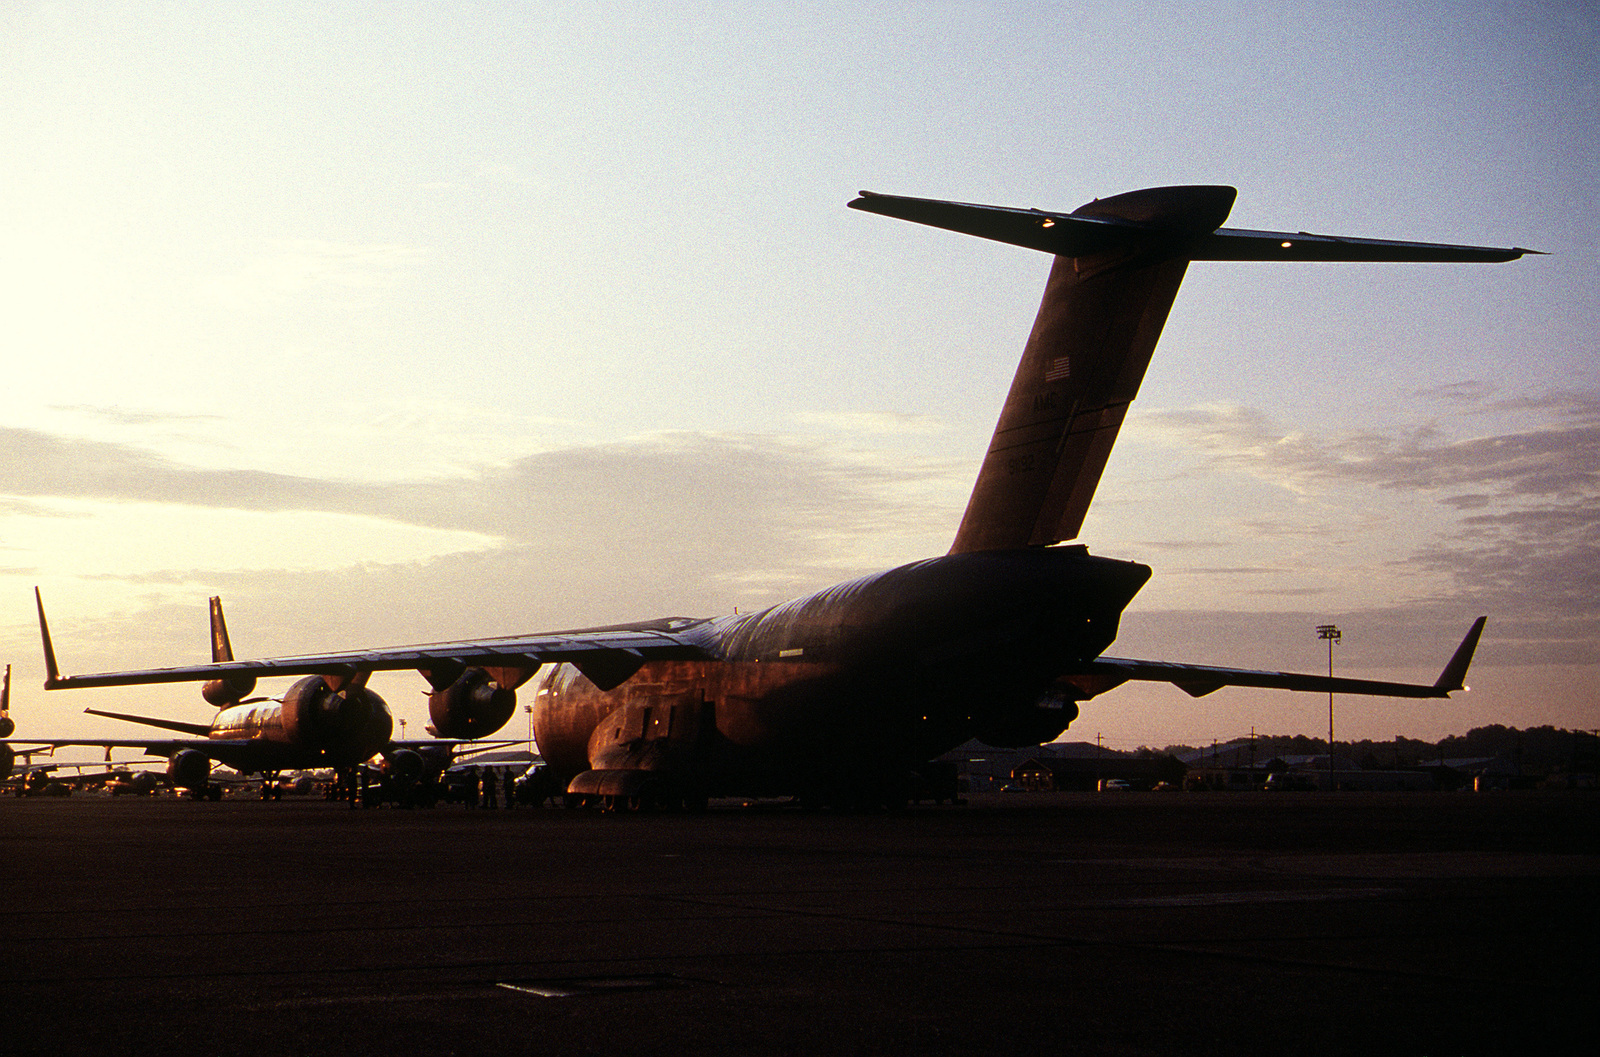 The first C-17 Globemaster III delivered to the Air Force's 437th Airlift Wing, on 14 Jun 93, sits on the ramp, silhouetted by the rising sun